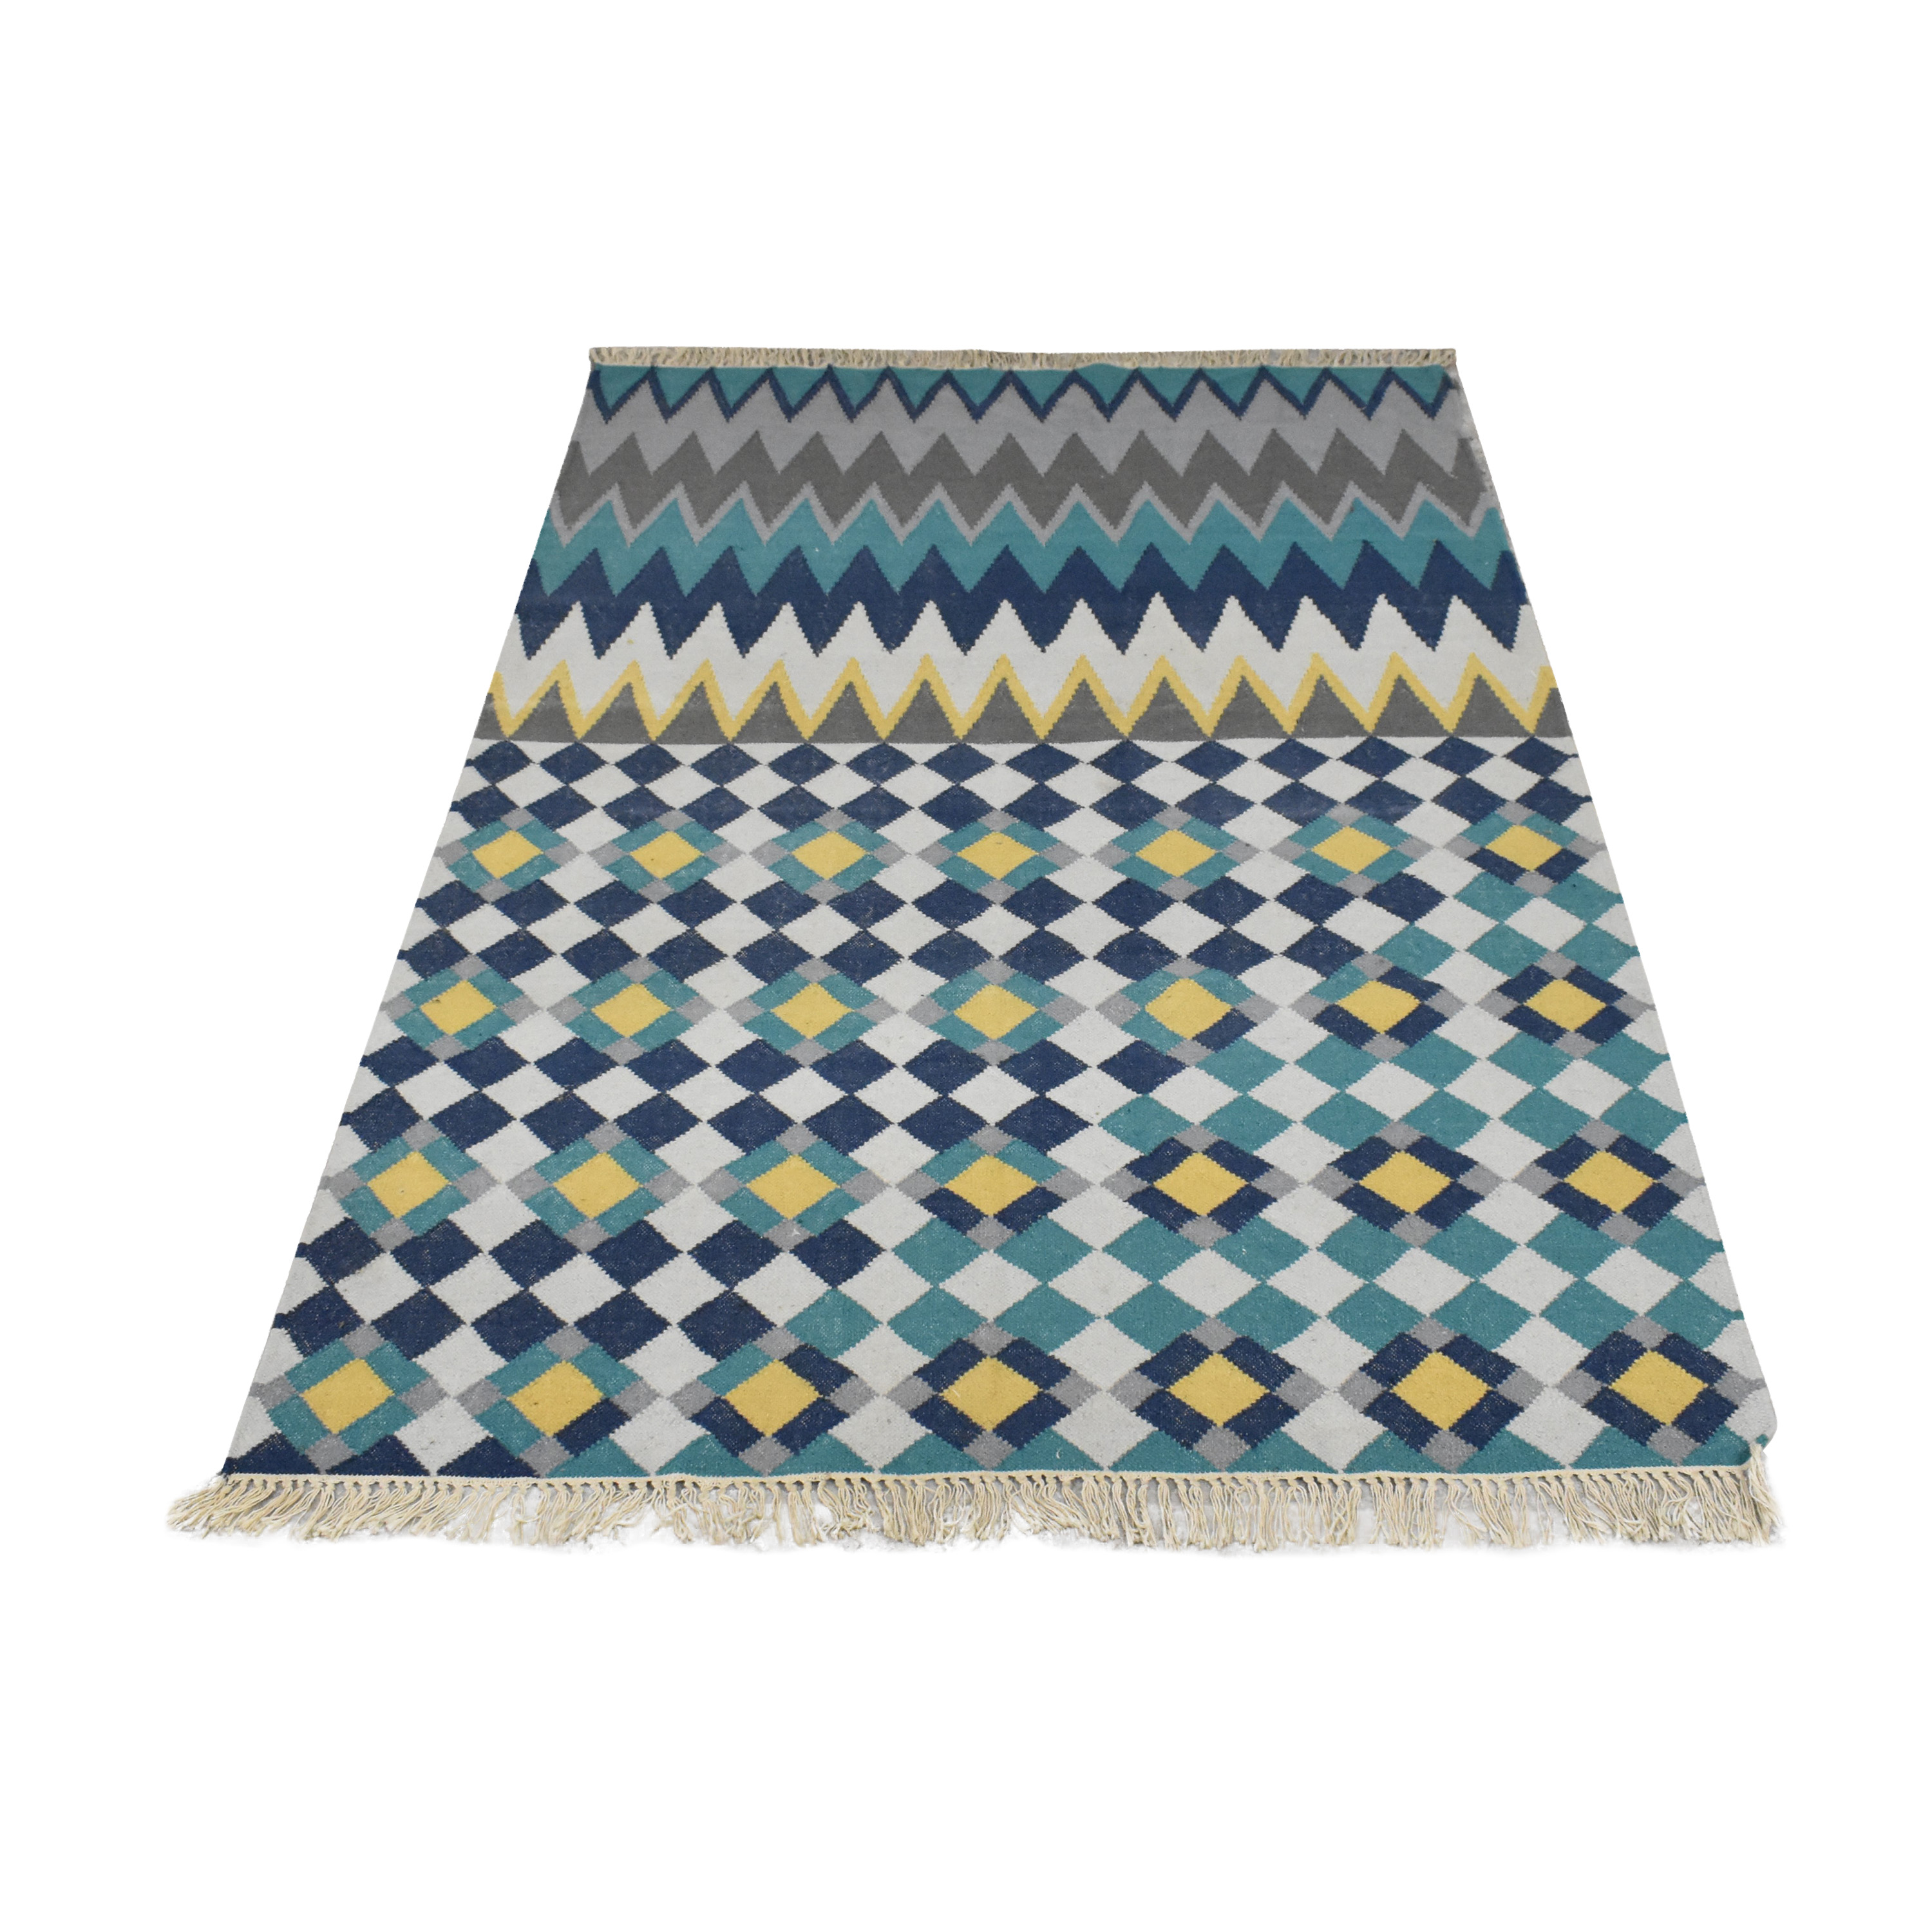 West Elm West Elm Wallace Sewell Chevron Dhurrie Rug coupon